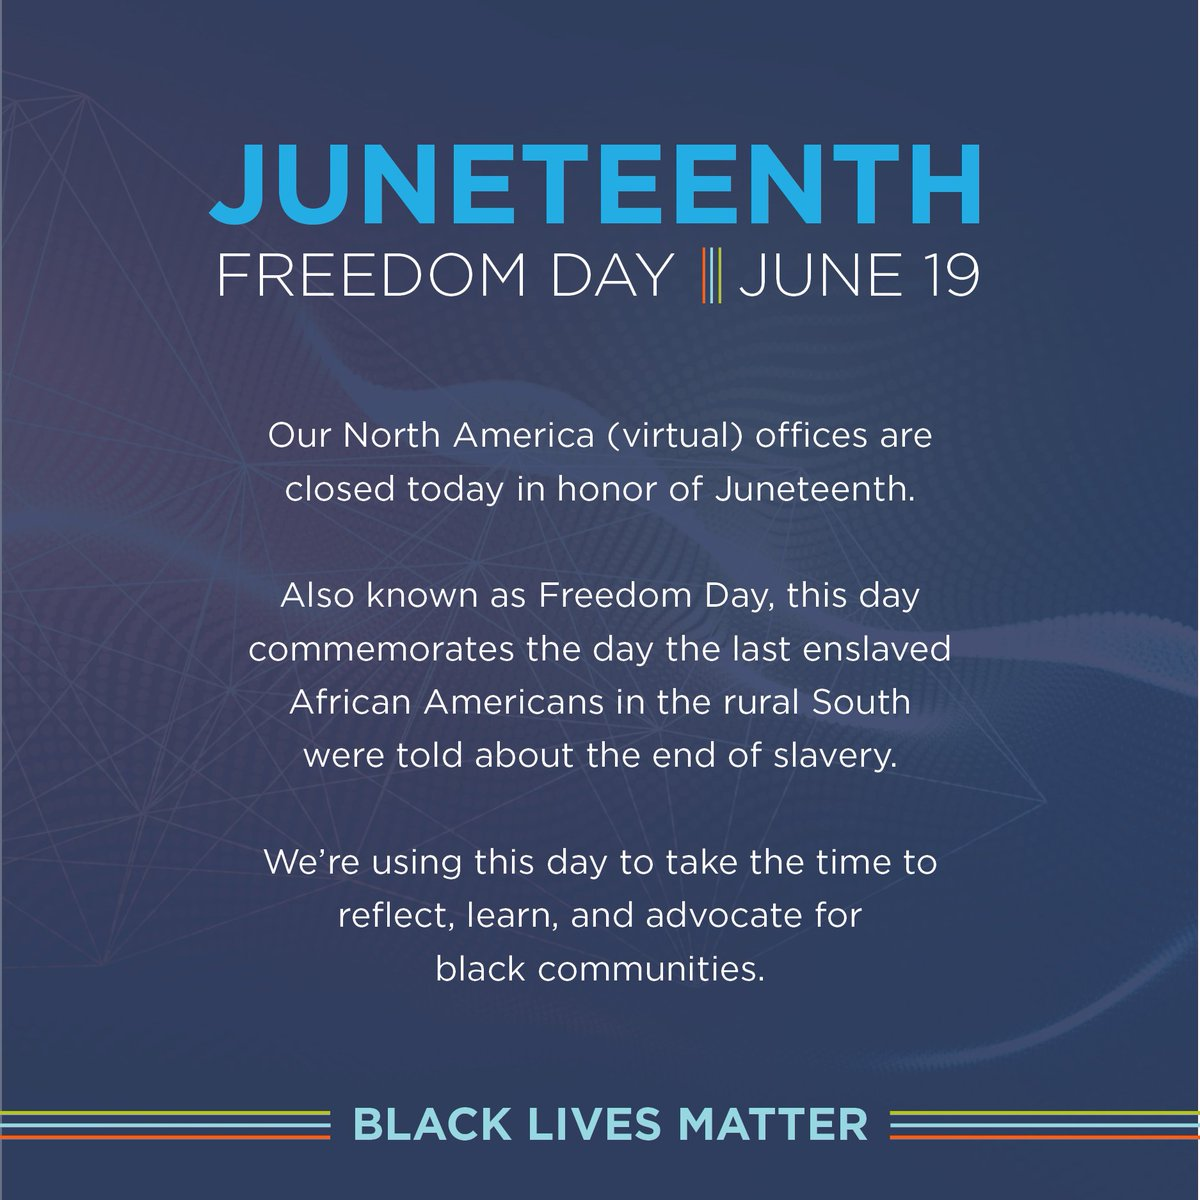 Xaxis US is closed today in honor of Juneteenth, also known as Freedom Day. We're using this day to reflect, learn, & advocate for black communities.  Here are some resources & information that our friends at @Mindshare_USA put together: https://t.co/e8Y7Vz5Ez9 https://t.co/0z9JQcpEXp